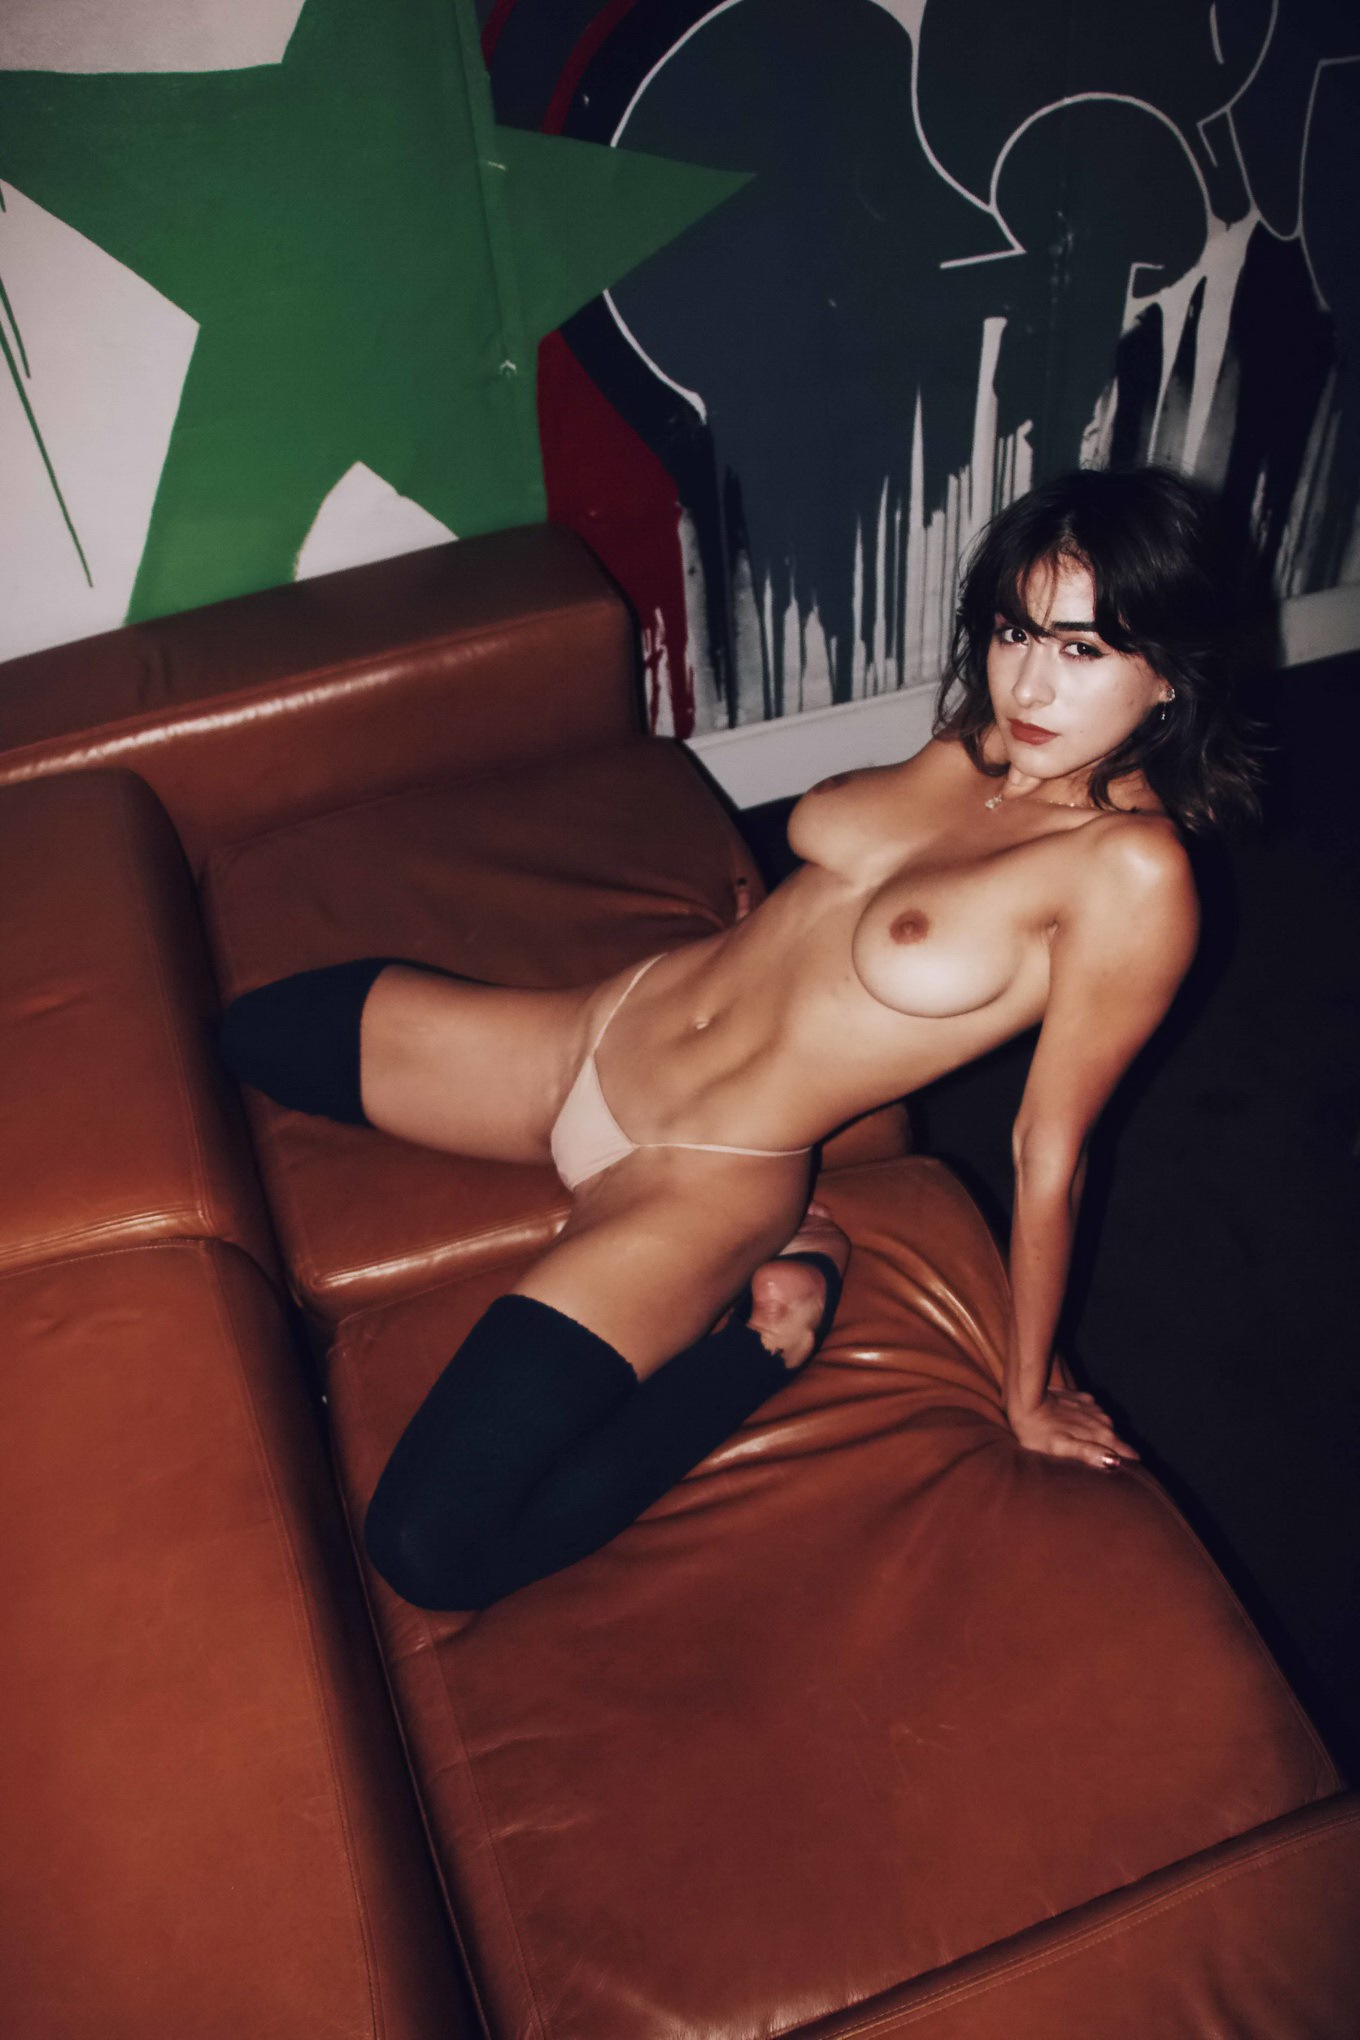 mia valentine stripping fully naked for deadly sins